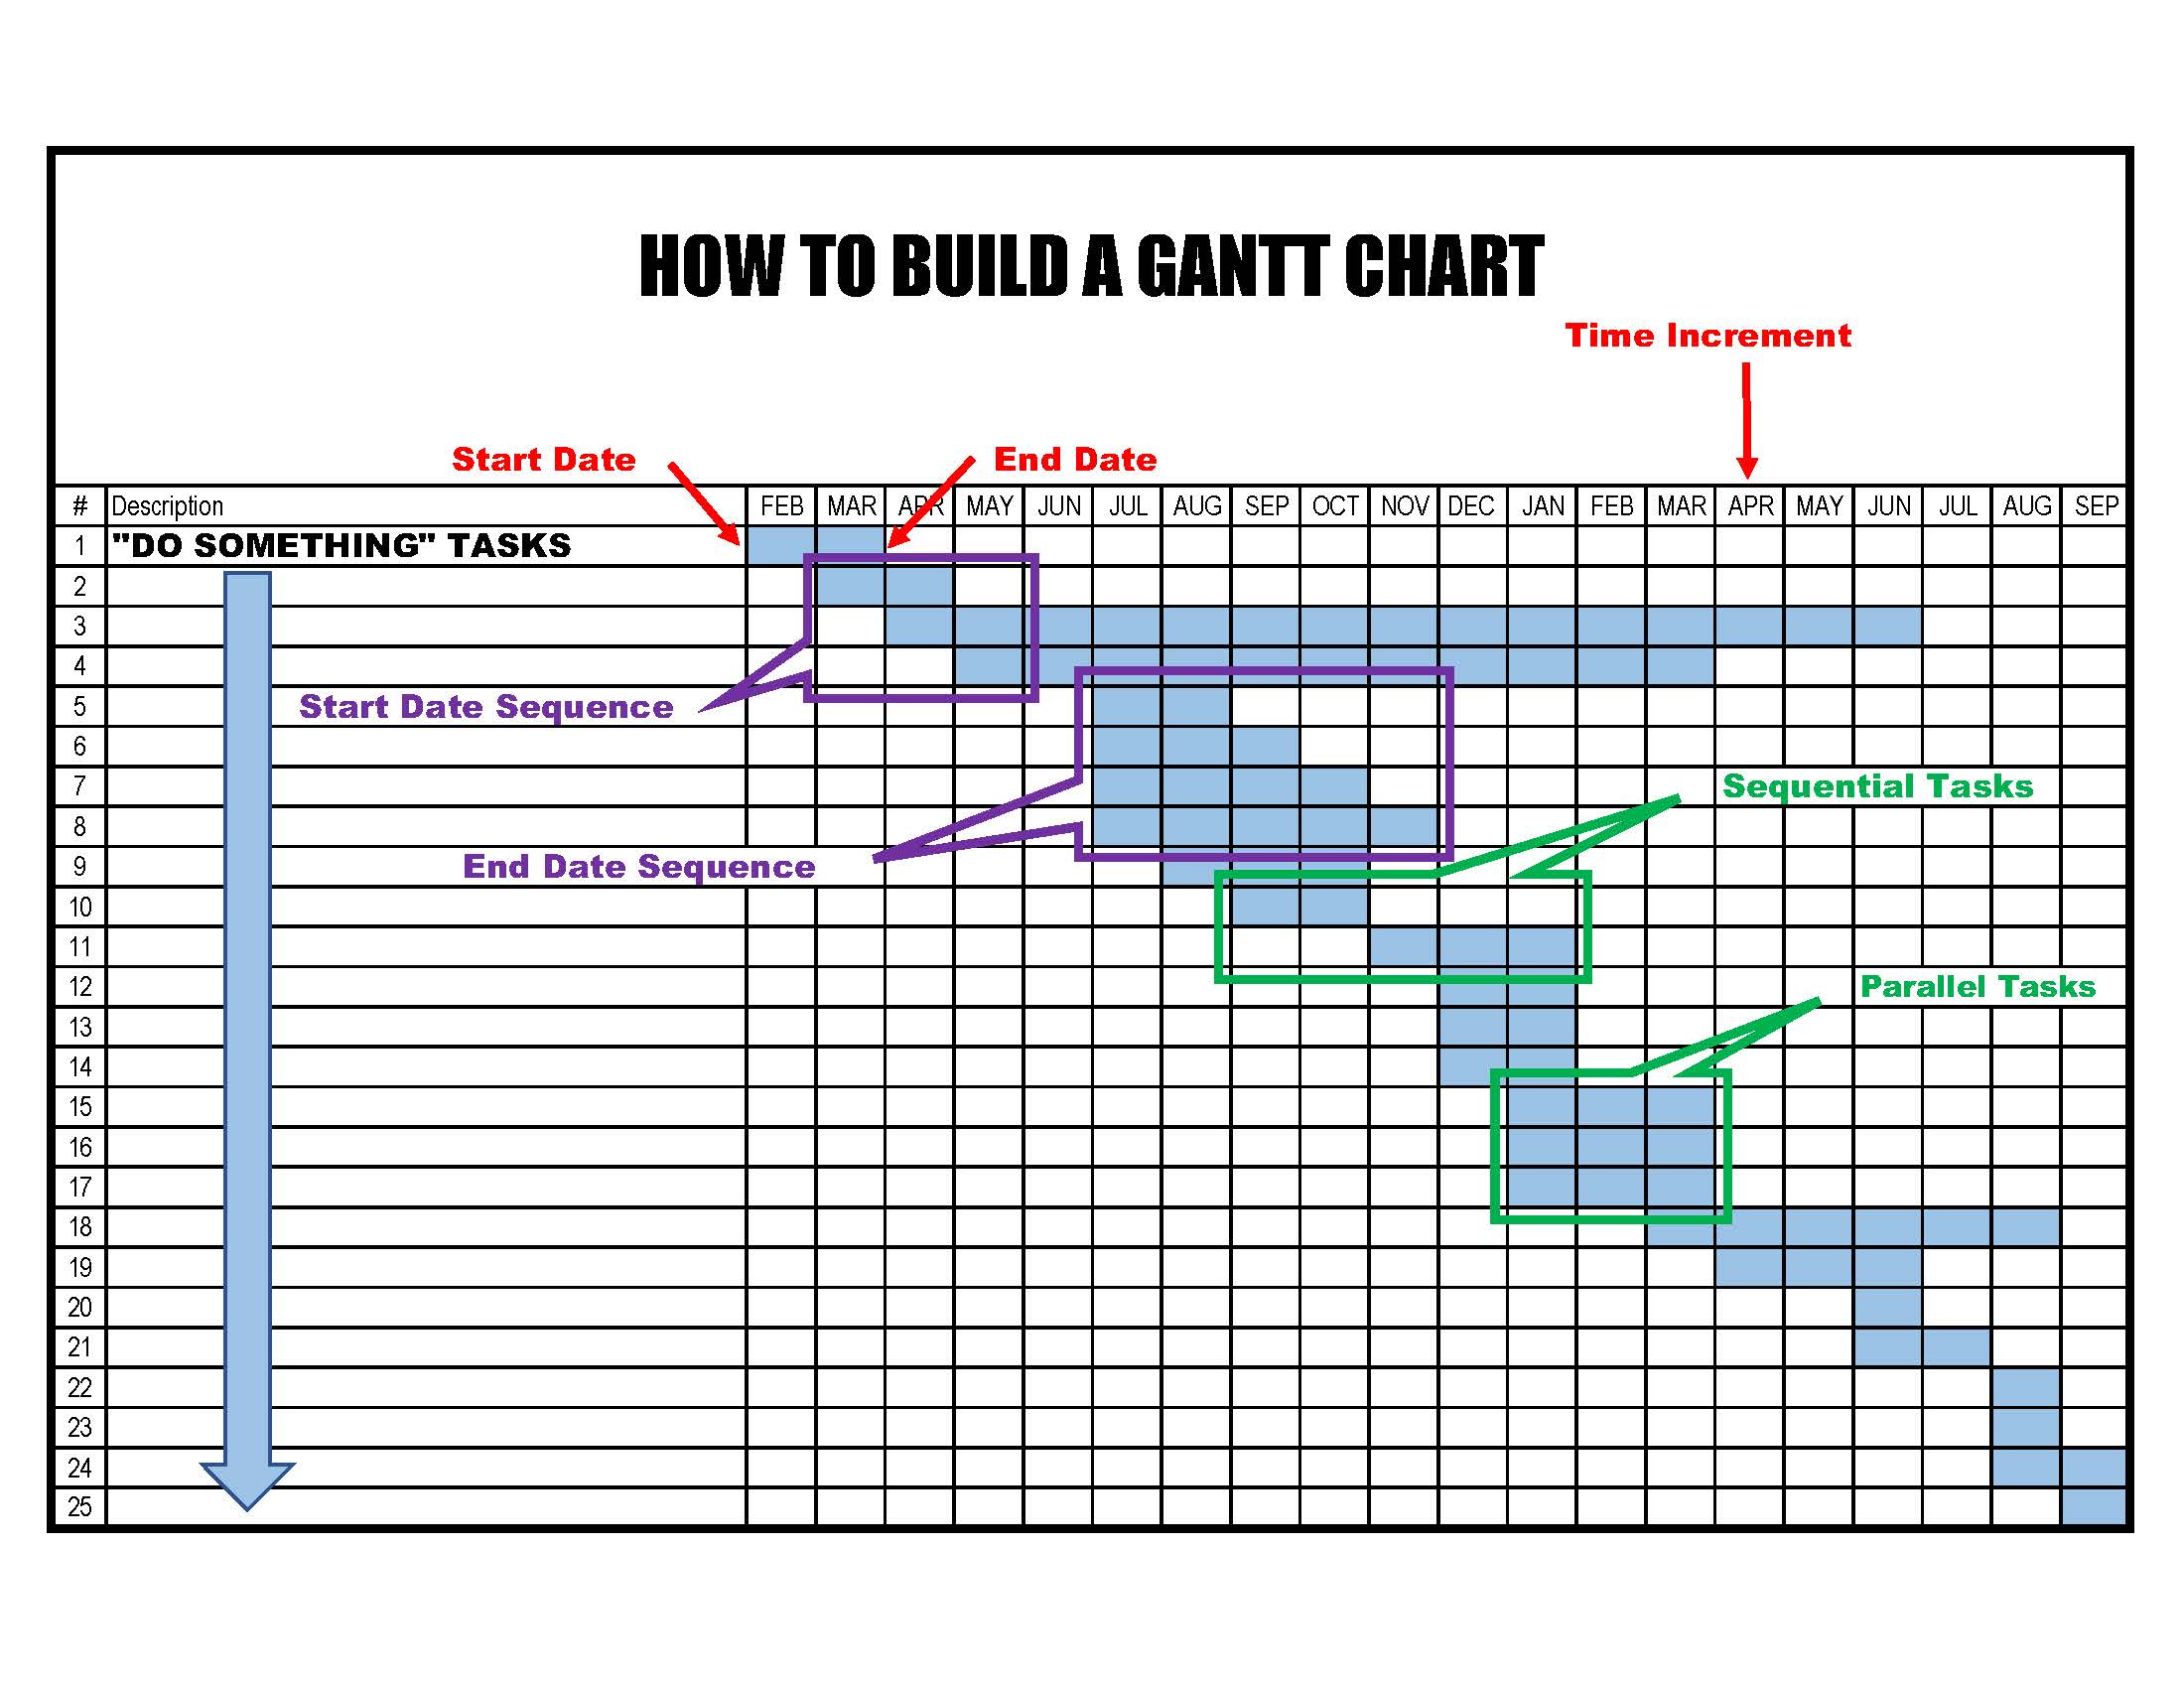 How to Build a Gantt Chart